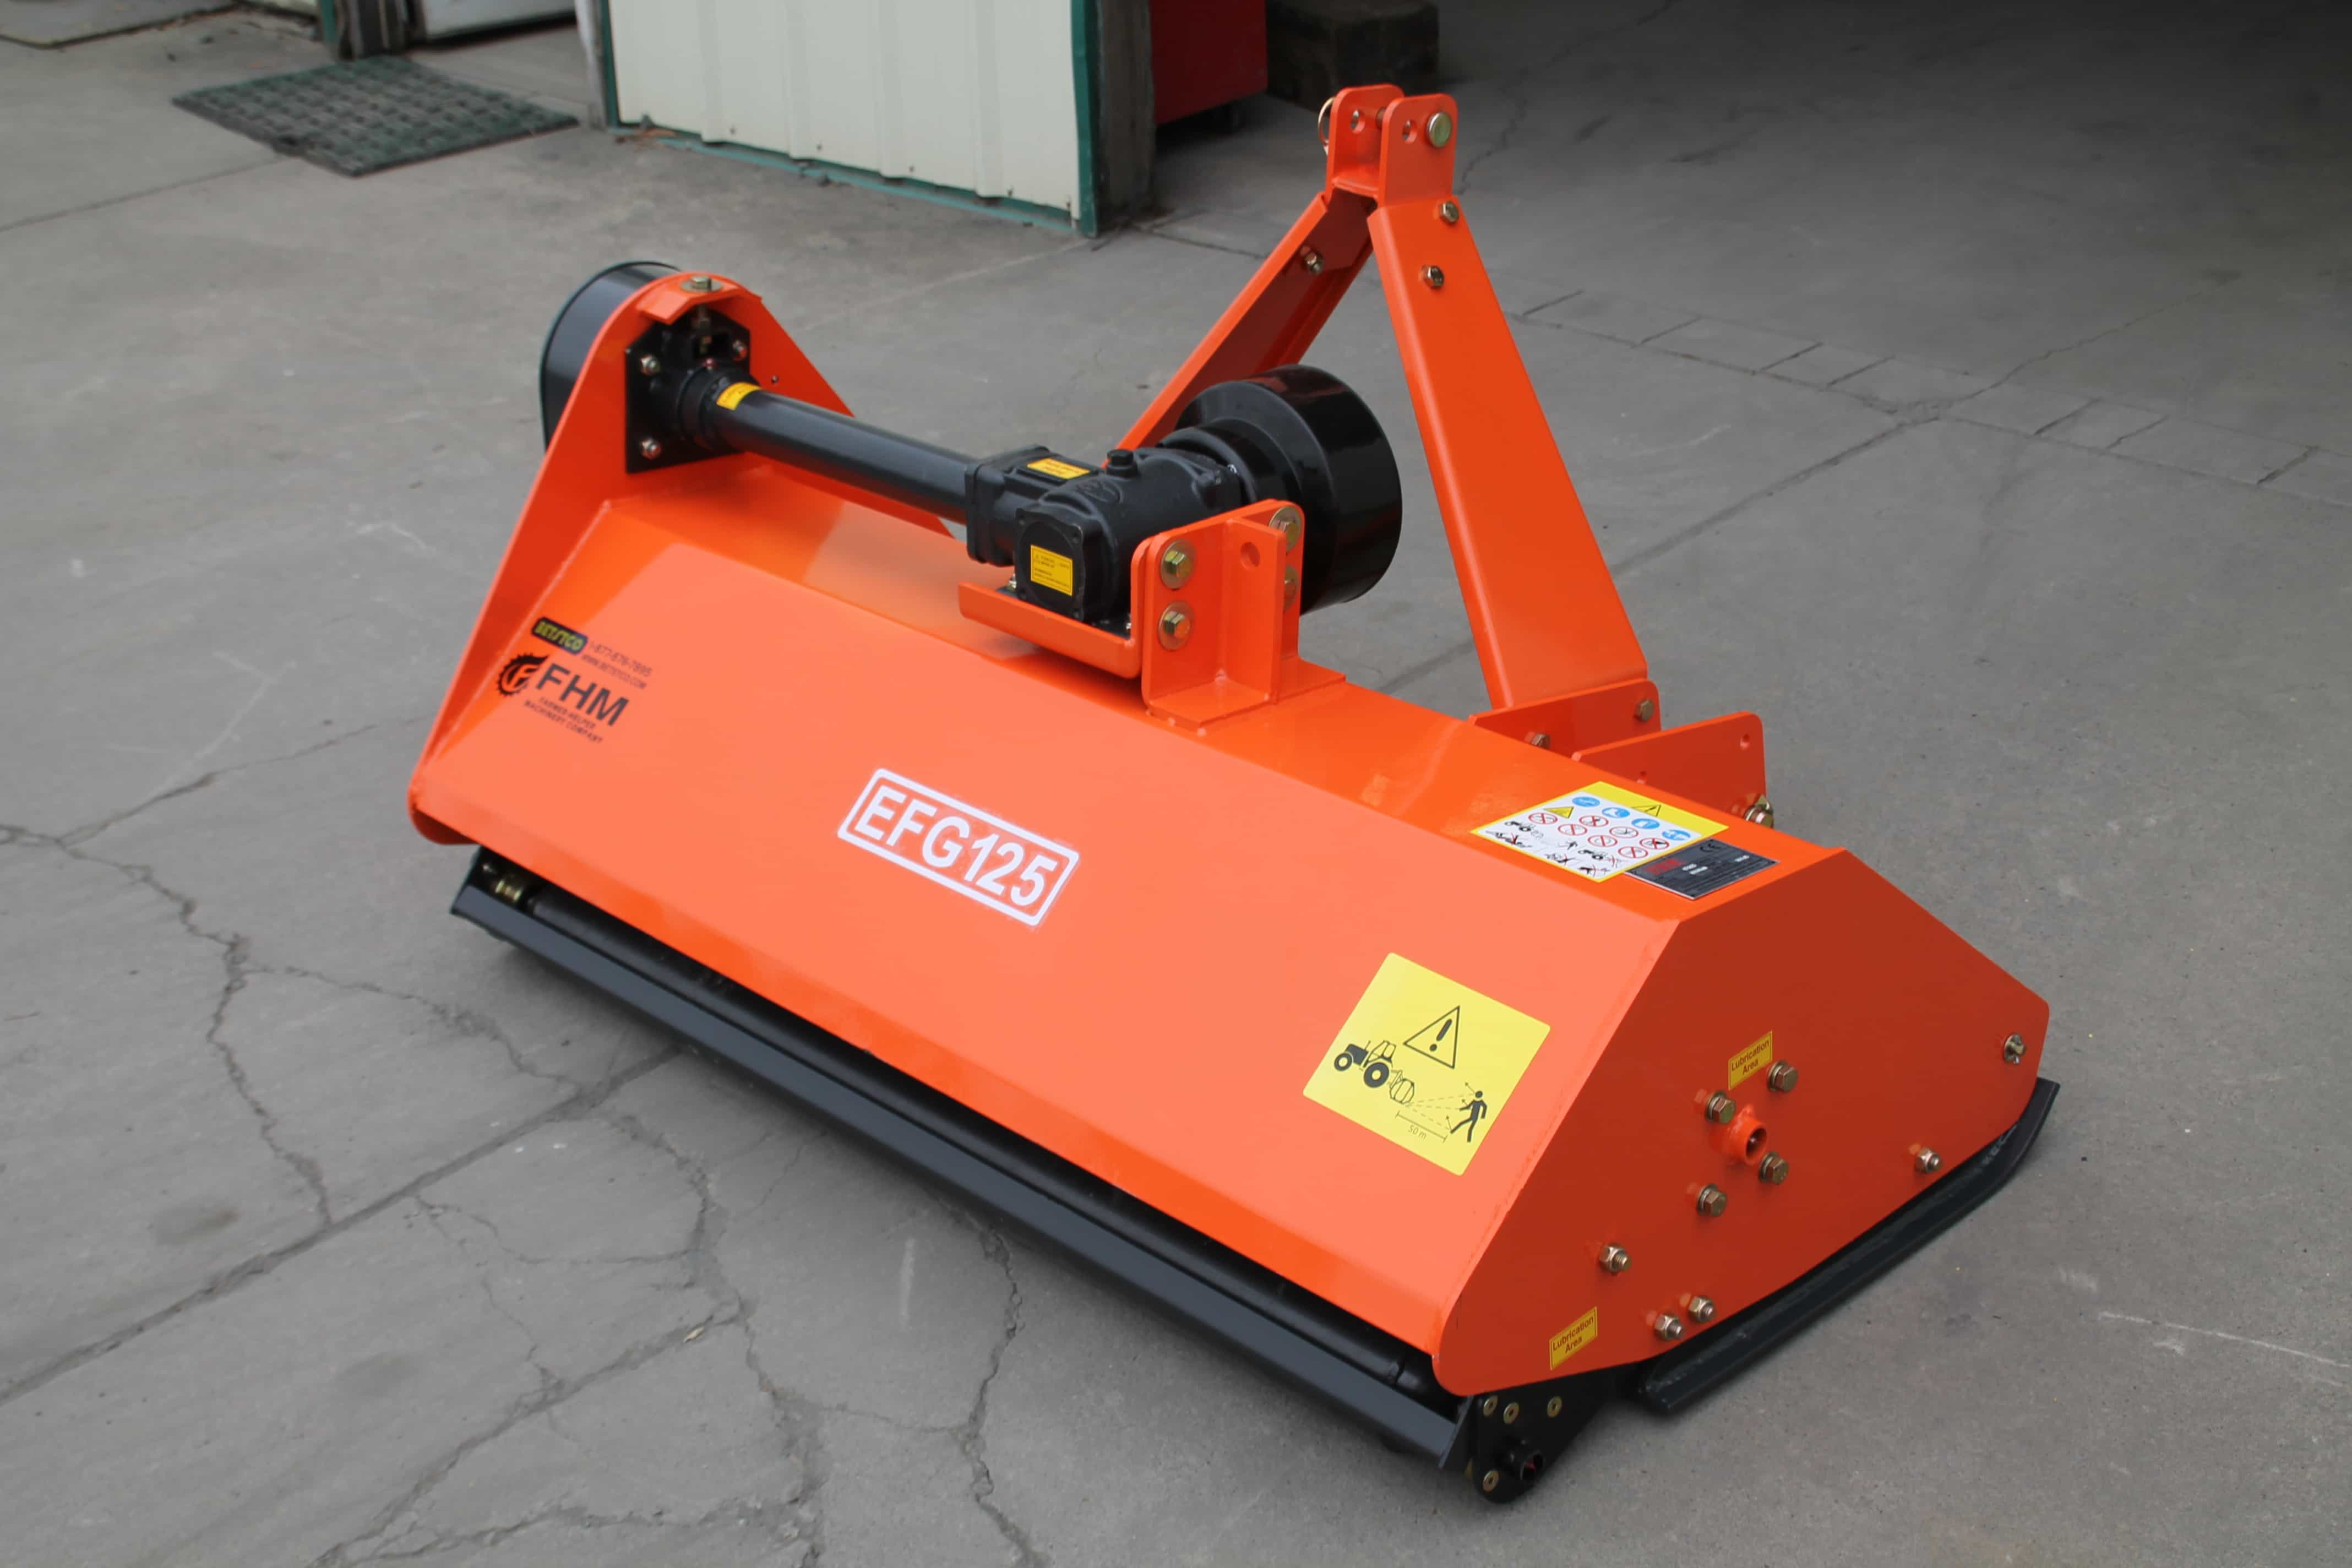 48 Quot Medium Duty Flail Mower Fh Efg125 Betstco Sales